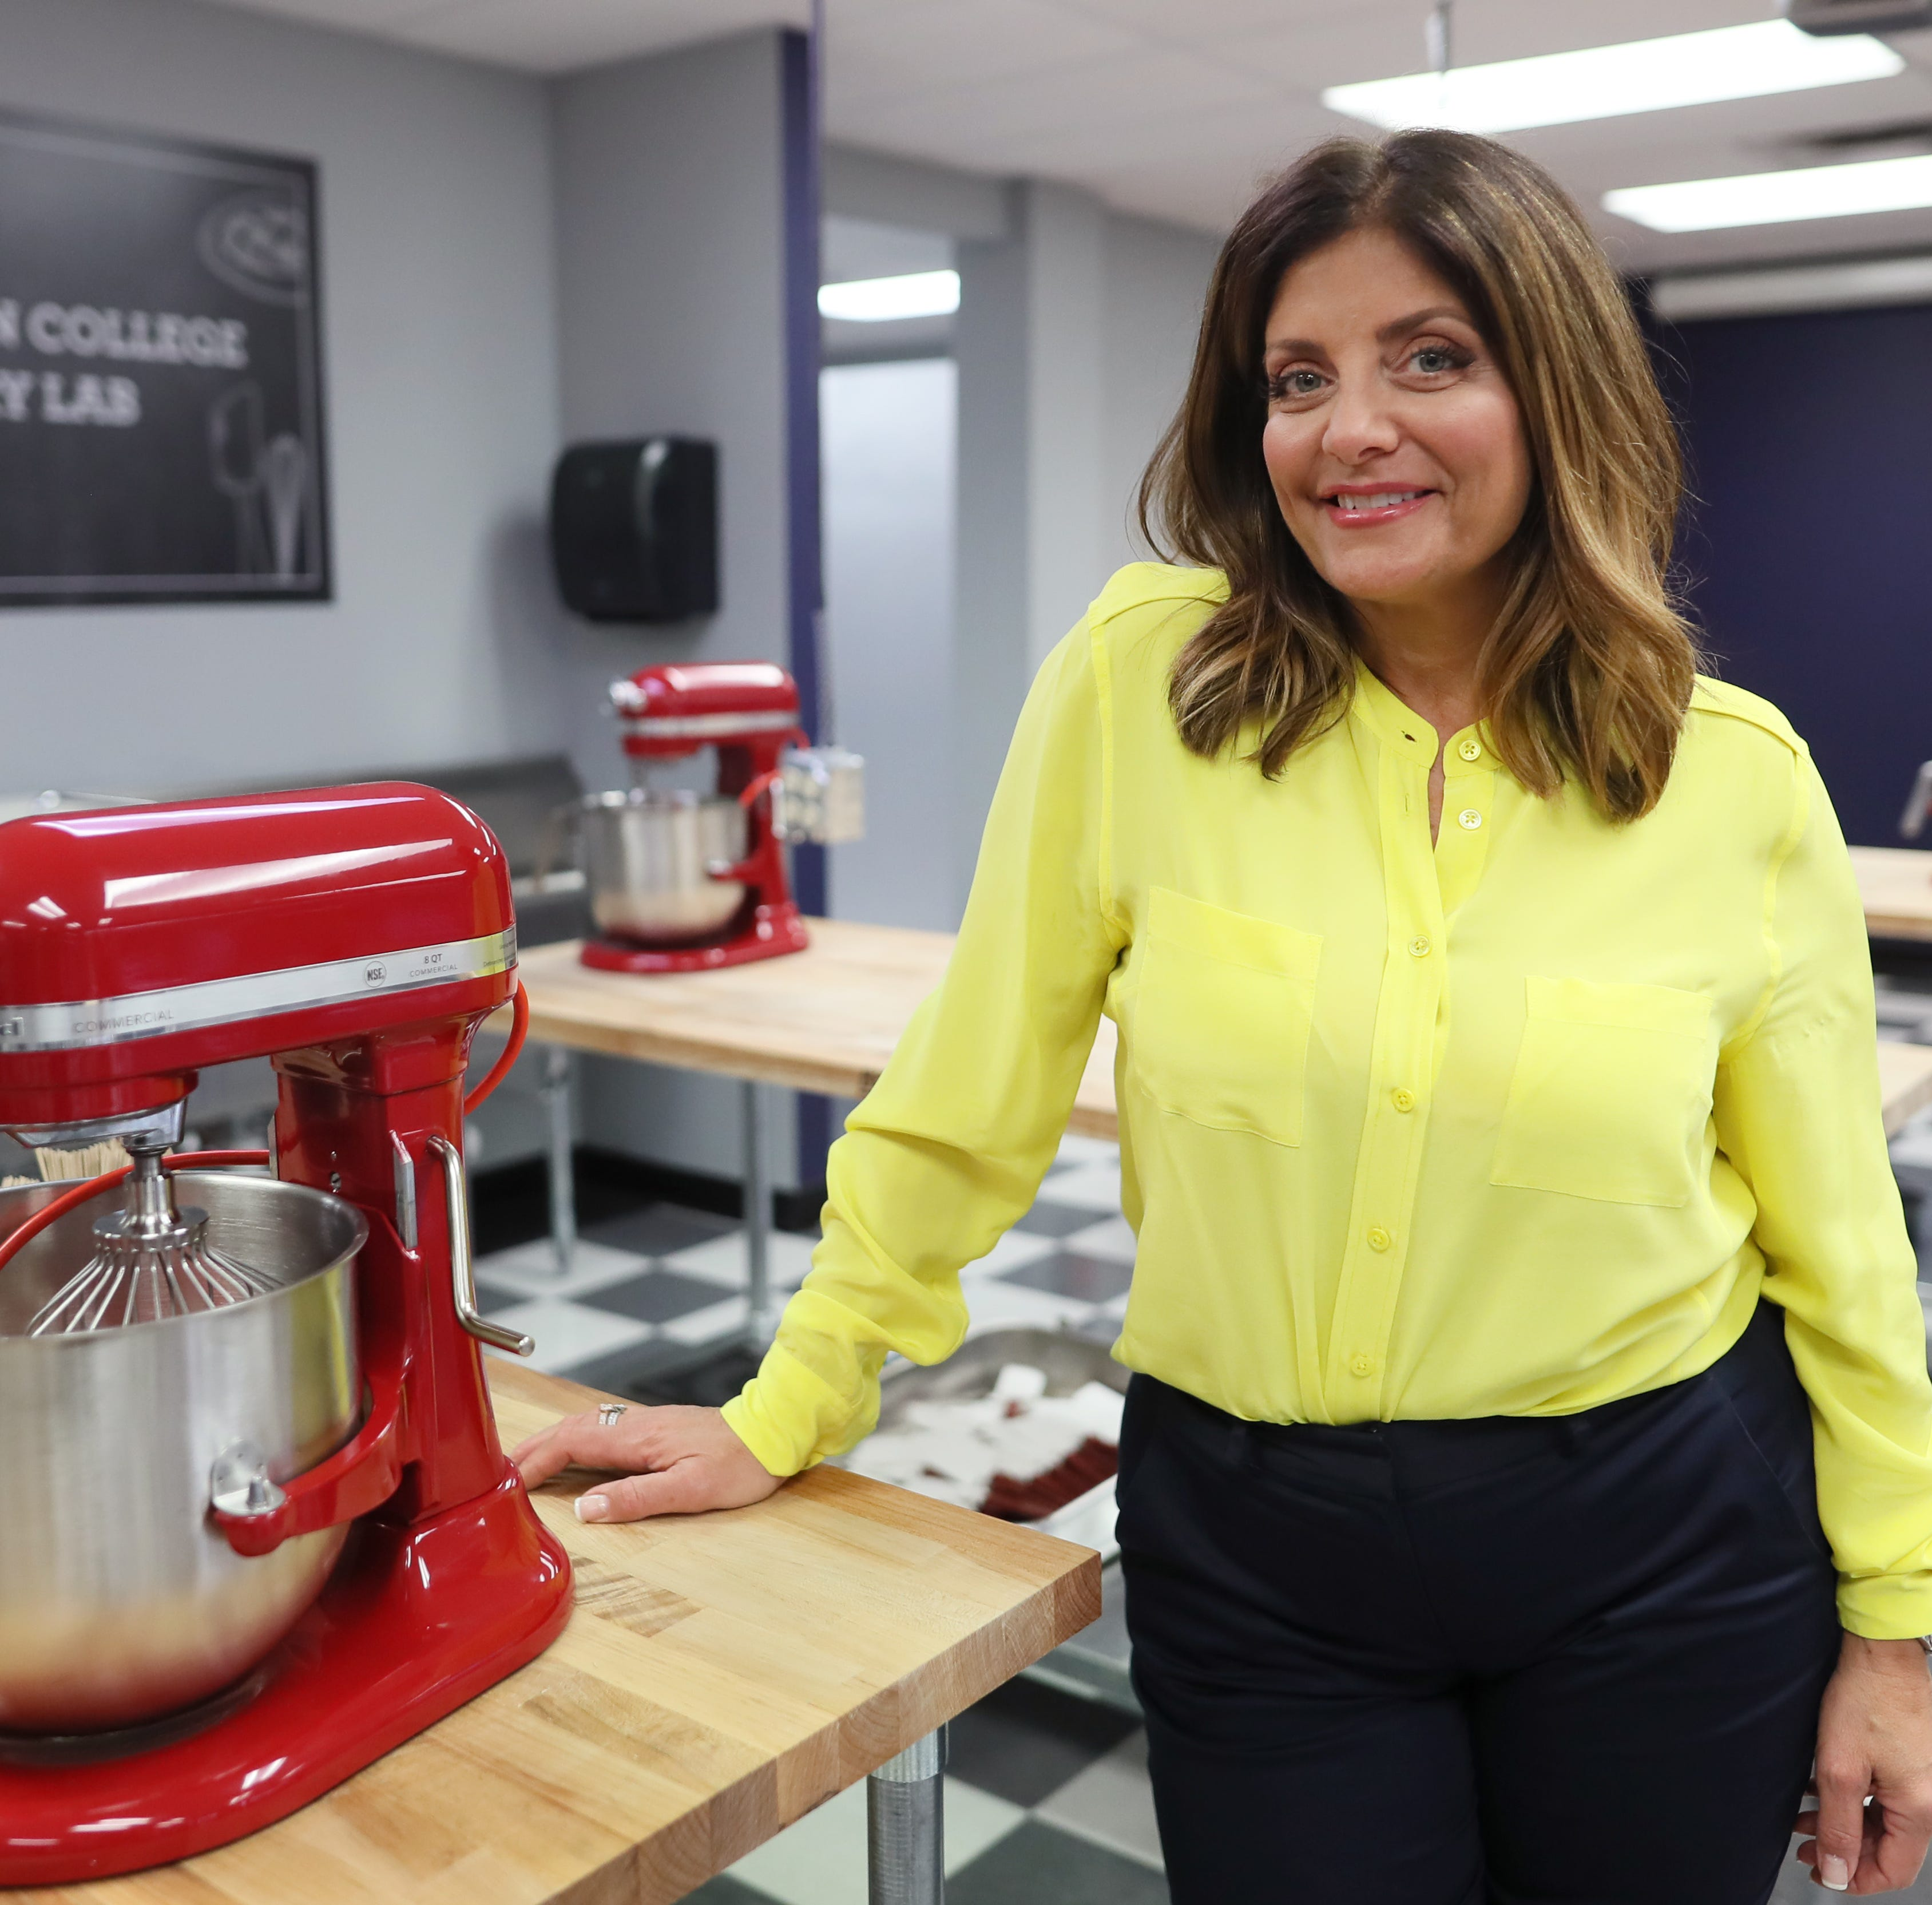 Remington College launches new culinary program with 'Housewives' star Kathy Wakile